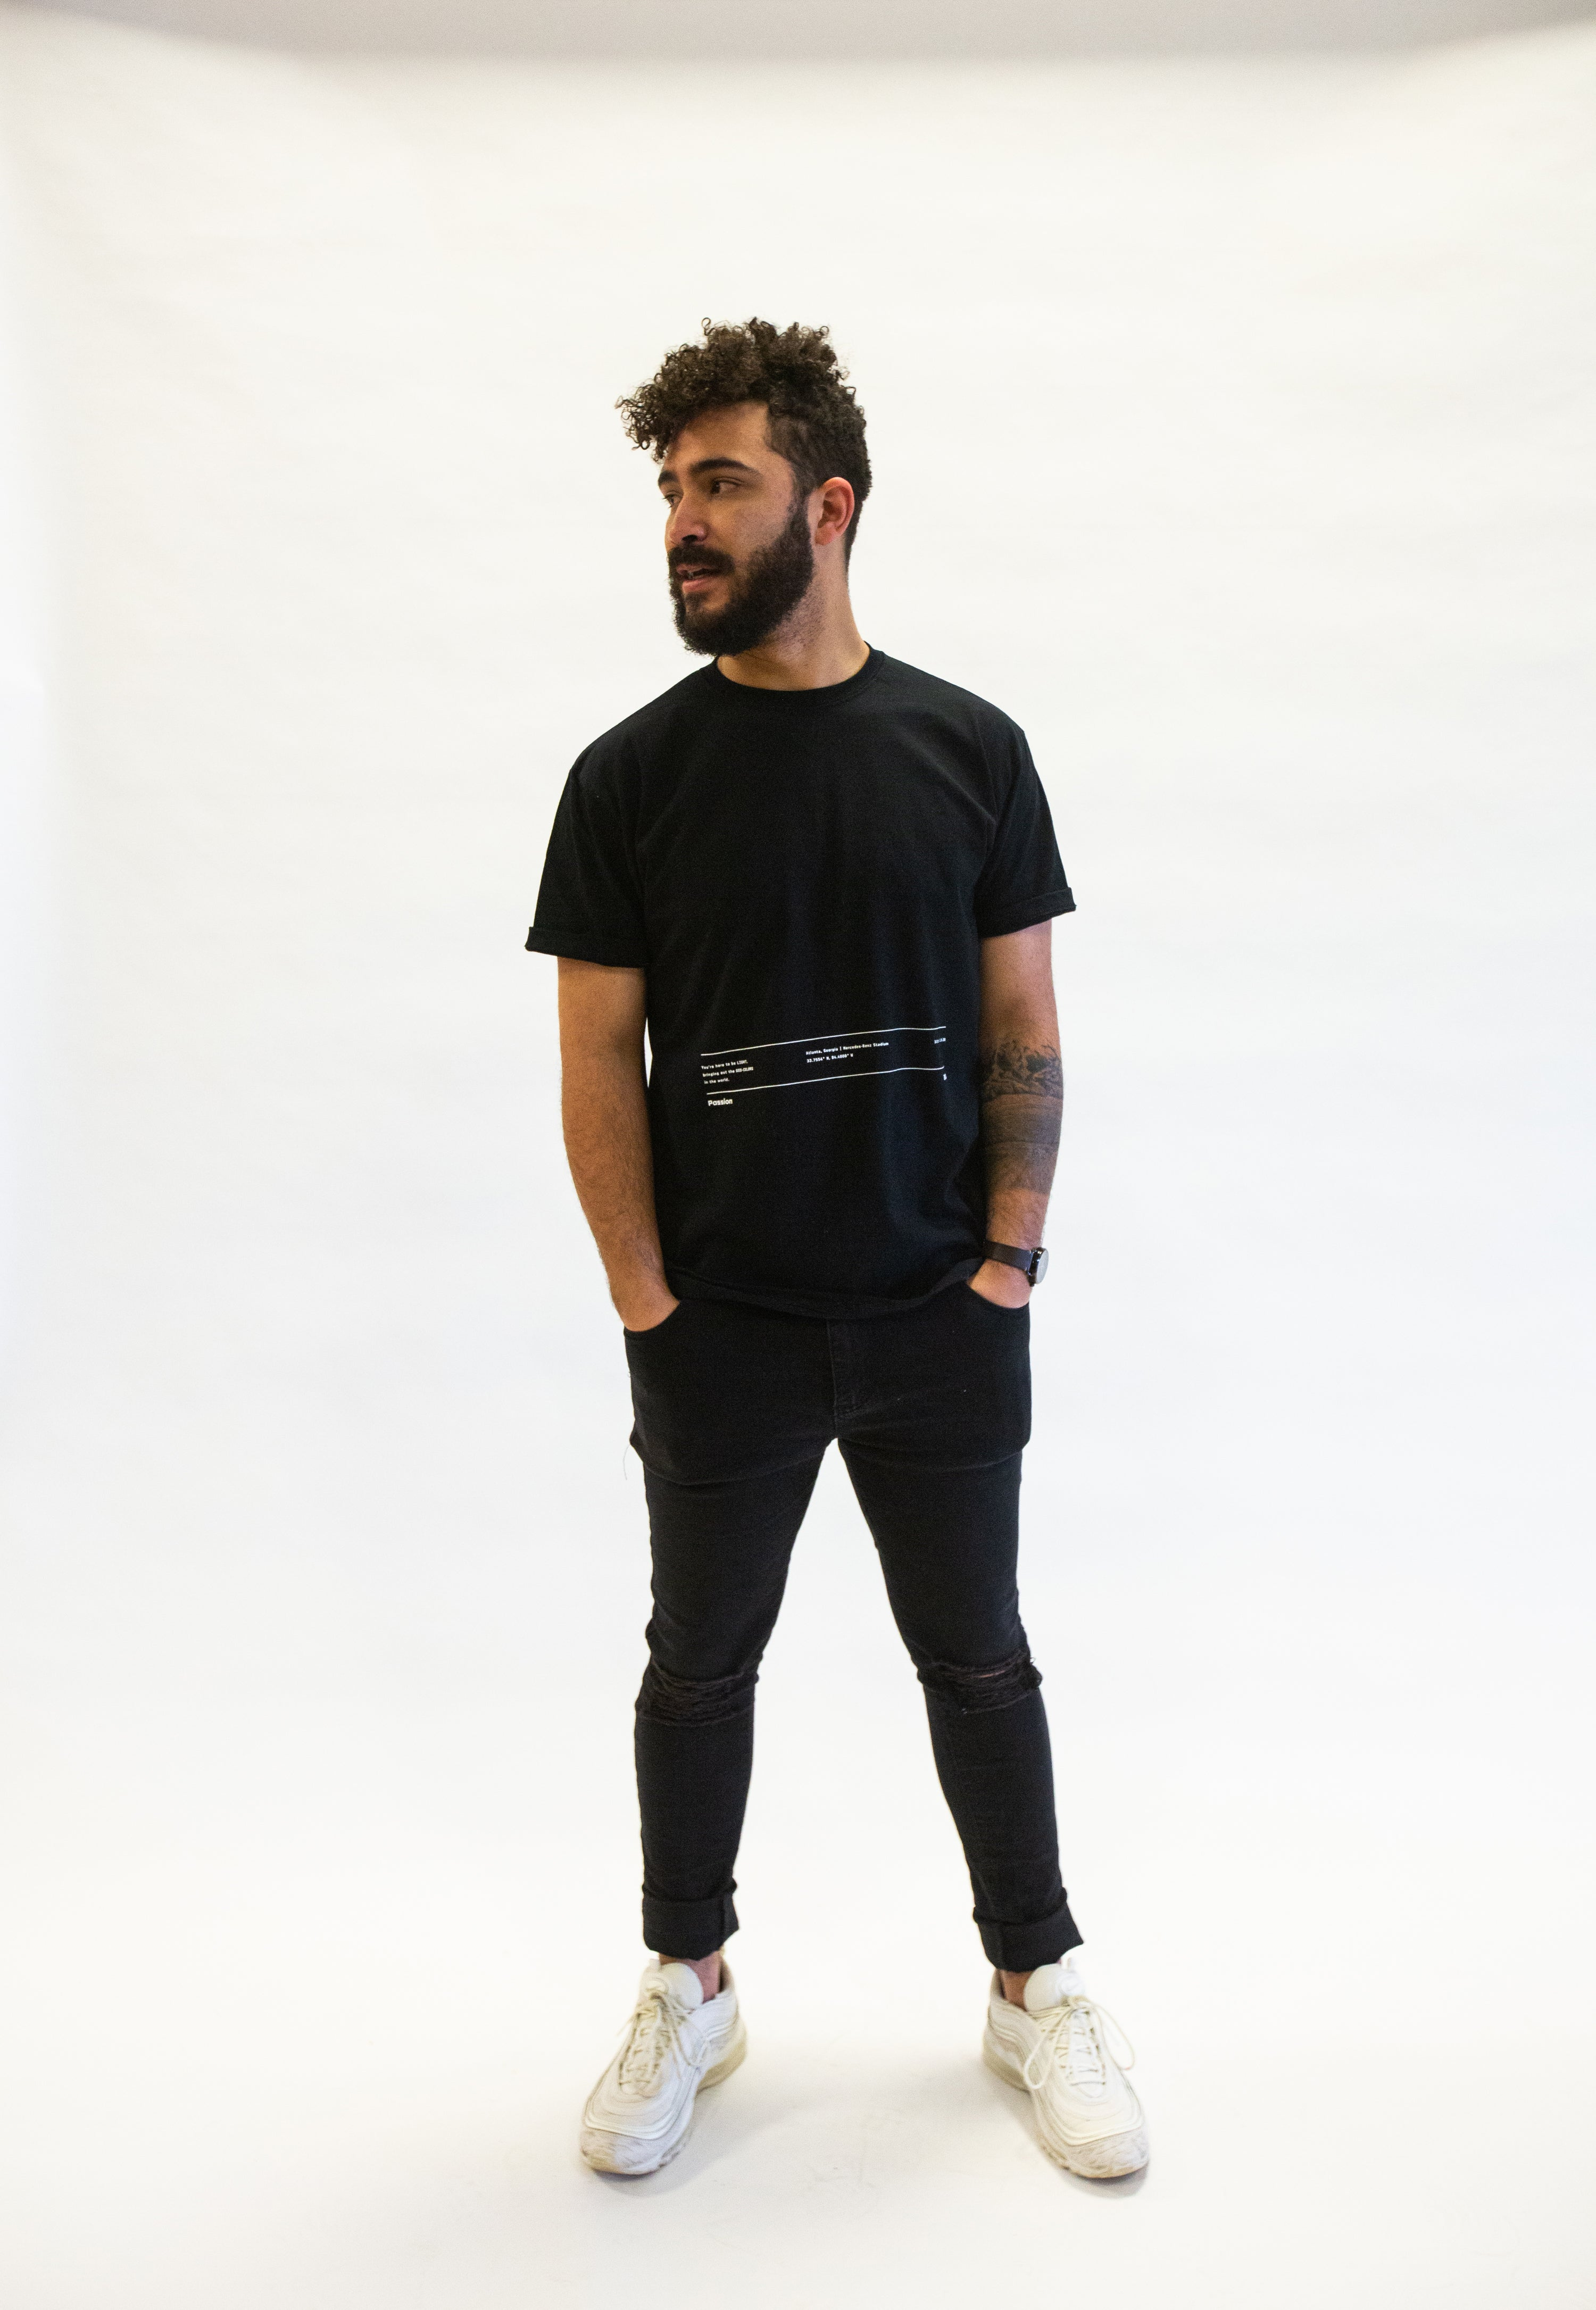 Passion 2020 - Black Short Sleeve